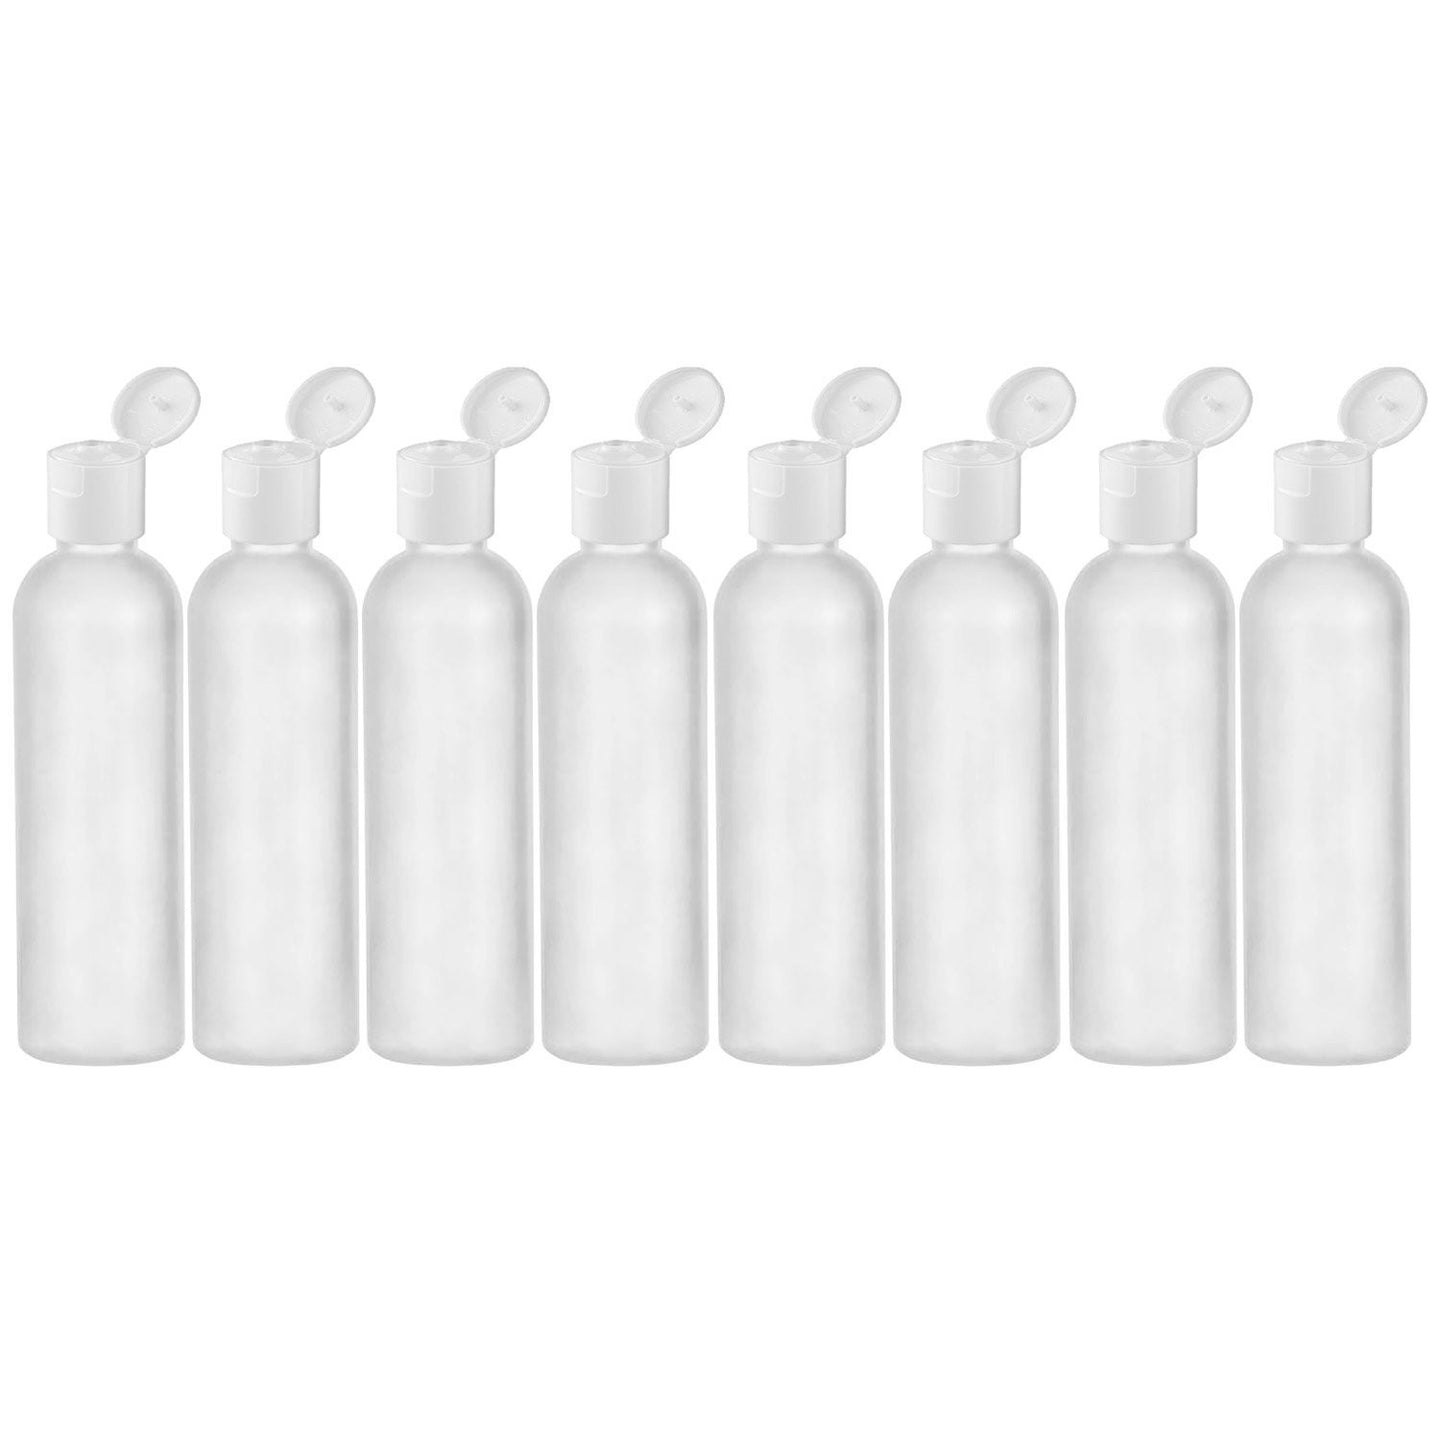 4 oz travel bottle HDPE flip cap empty travel size containers - 8 Pack